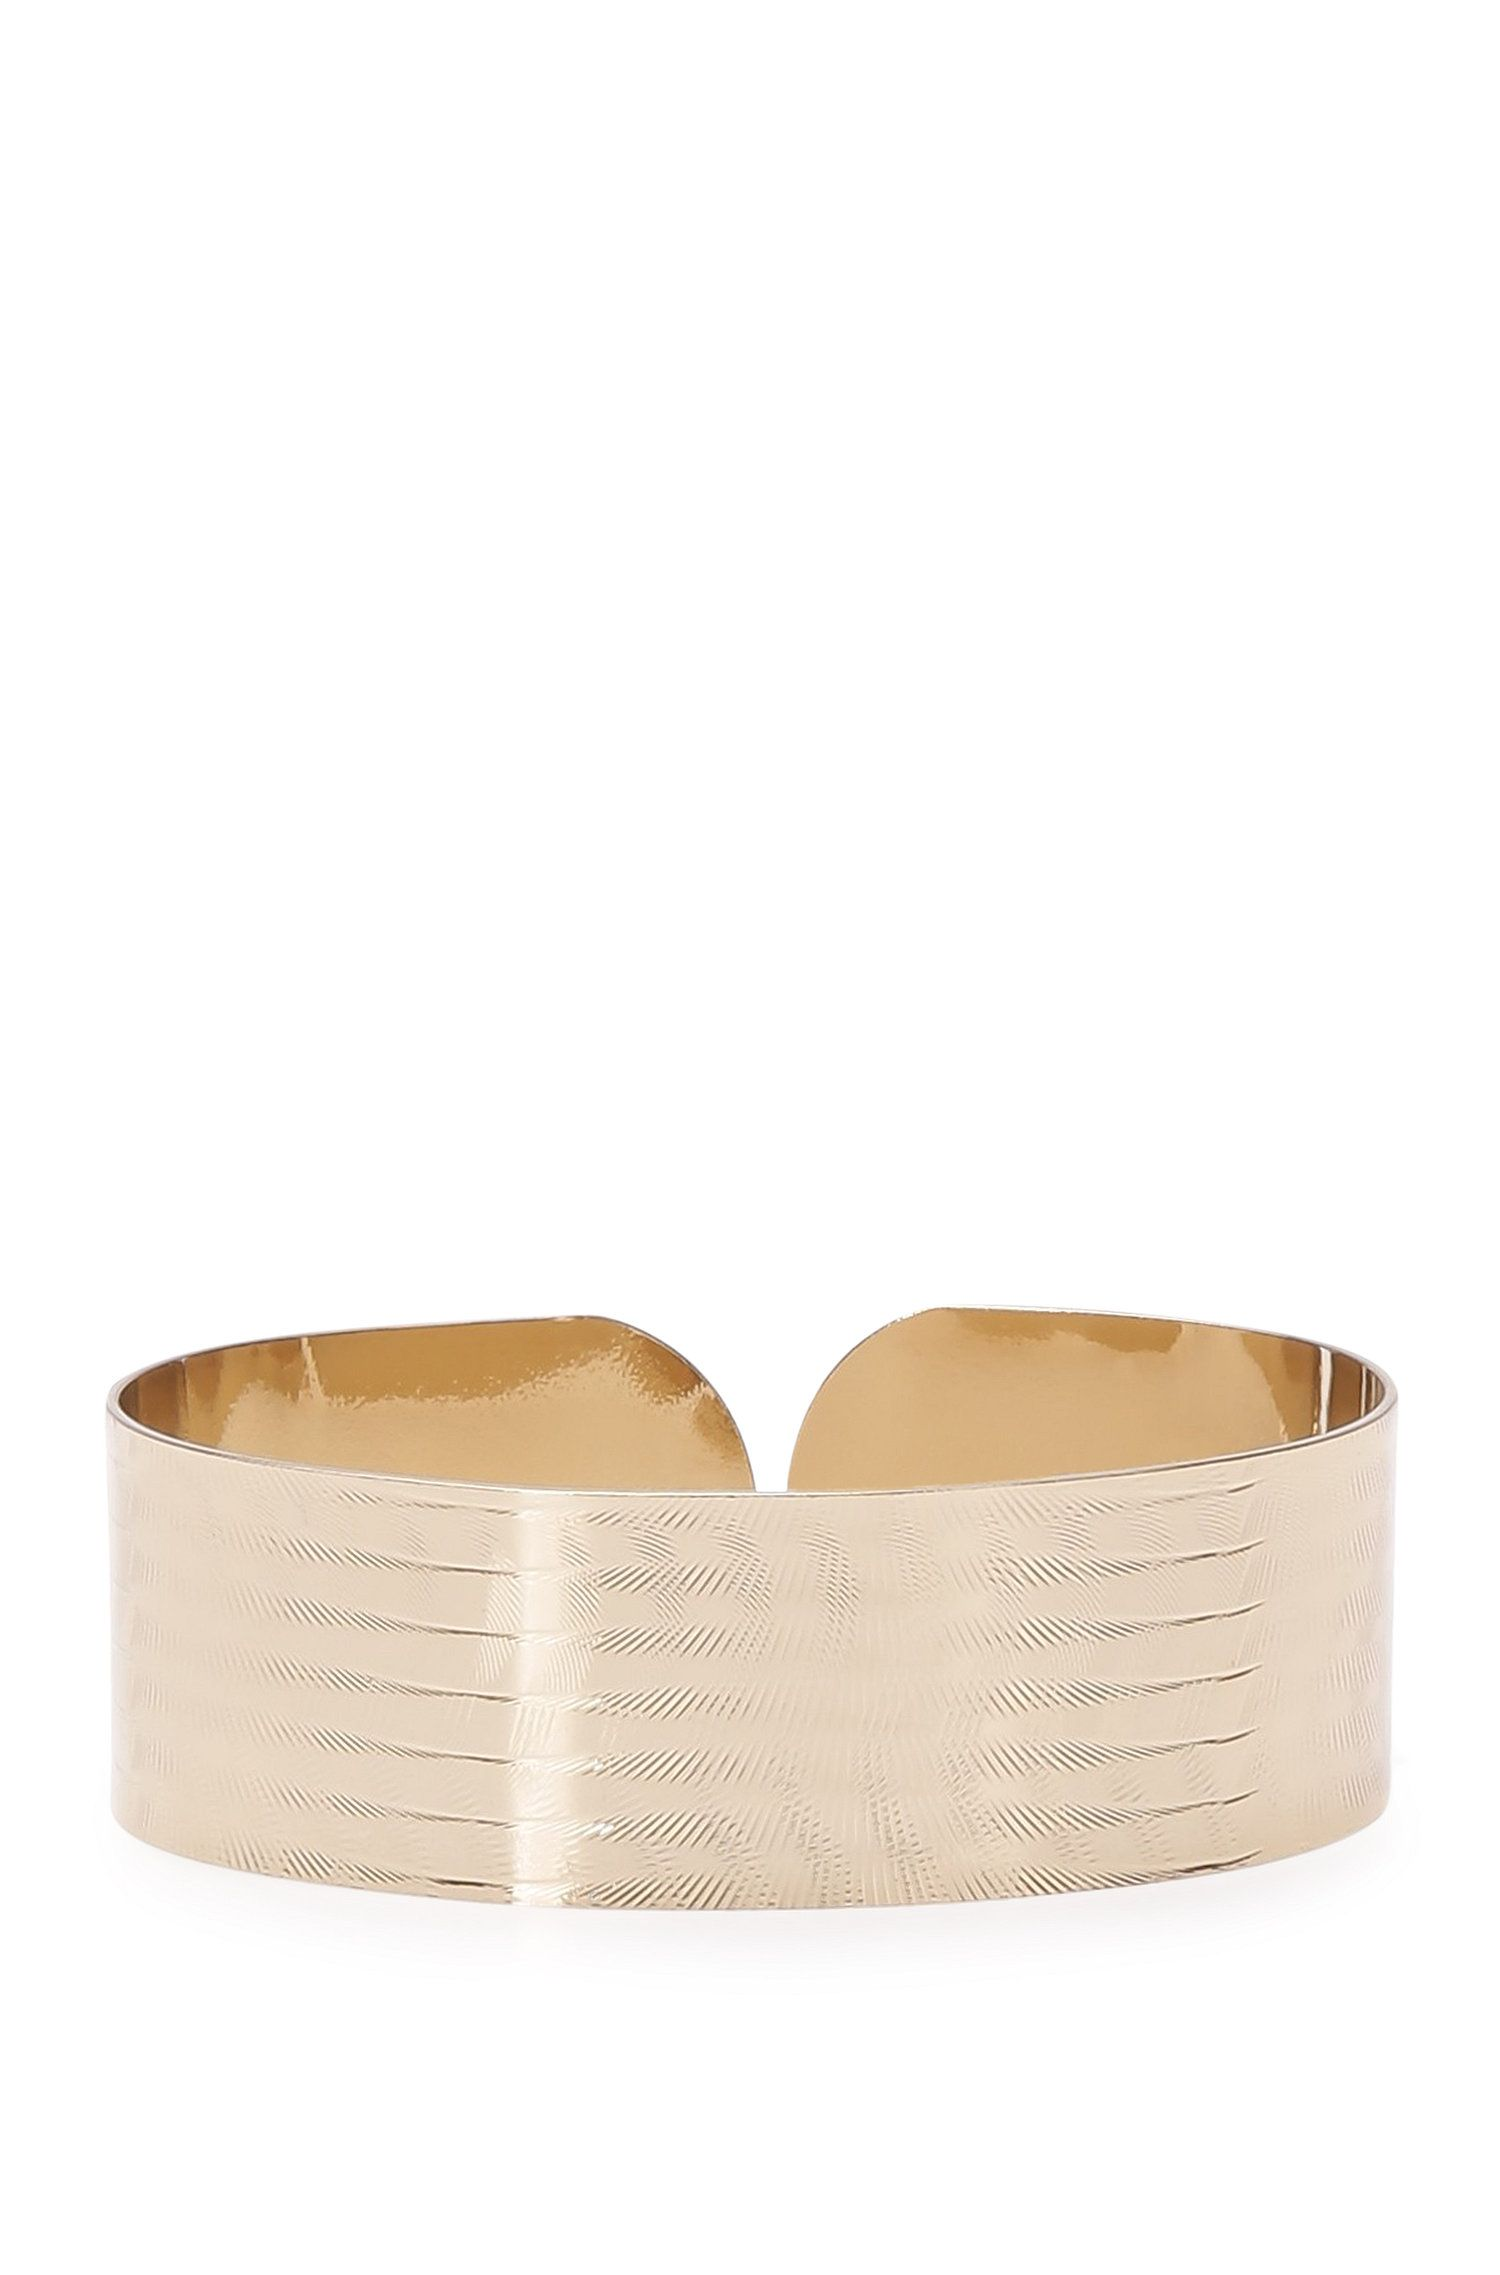 Brass bangle with engraving: 'Myrina'